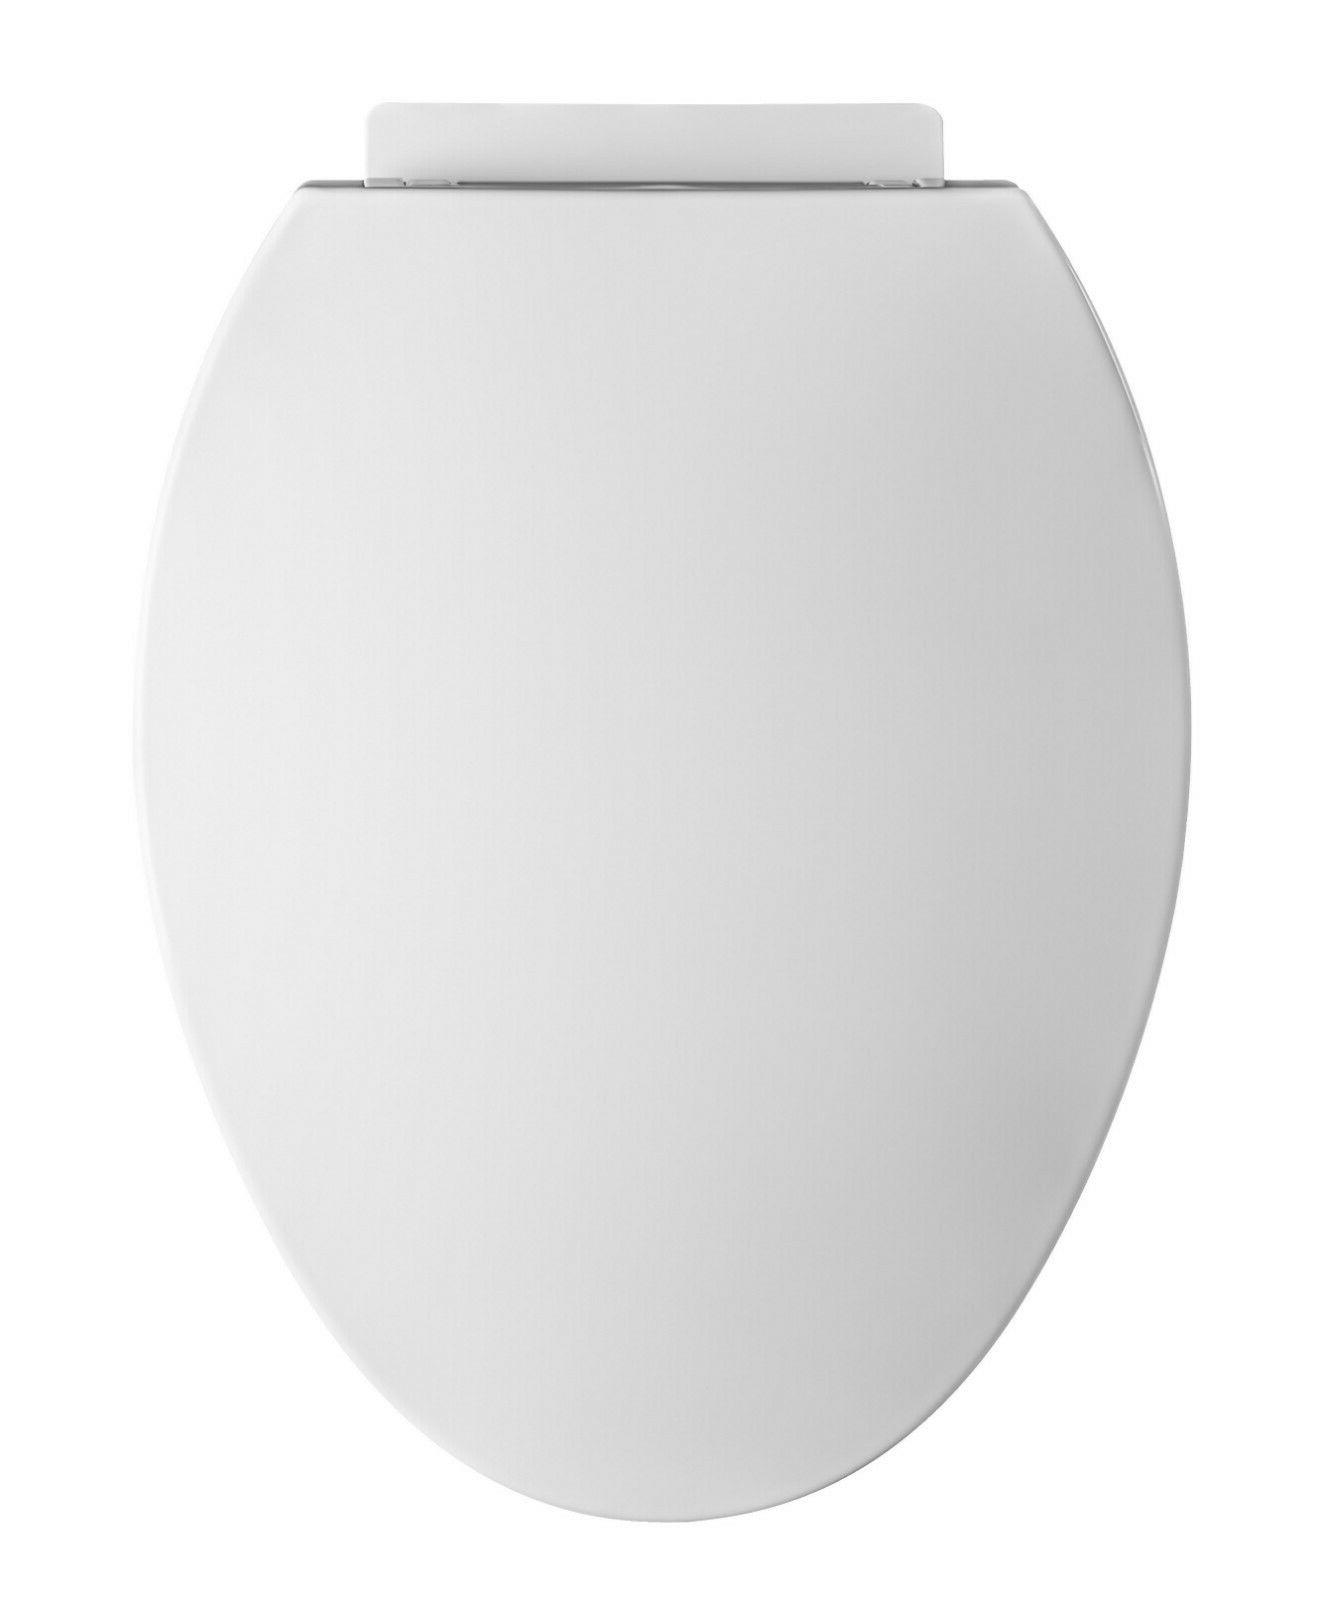 Winfield Toilet Seat & Clean, Quick Close